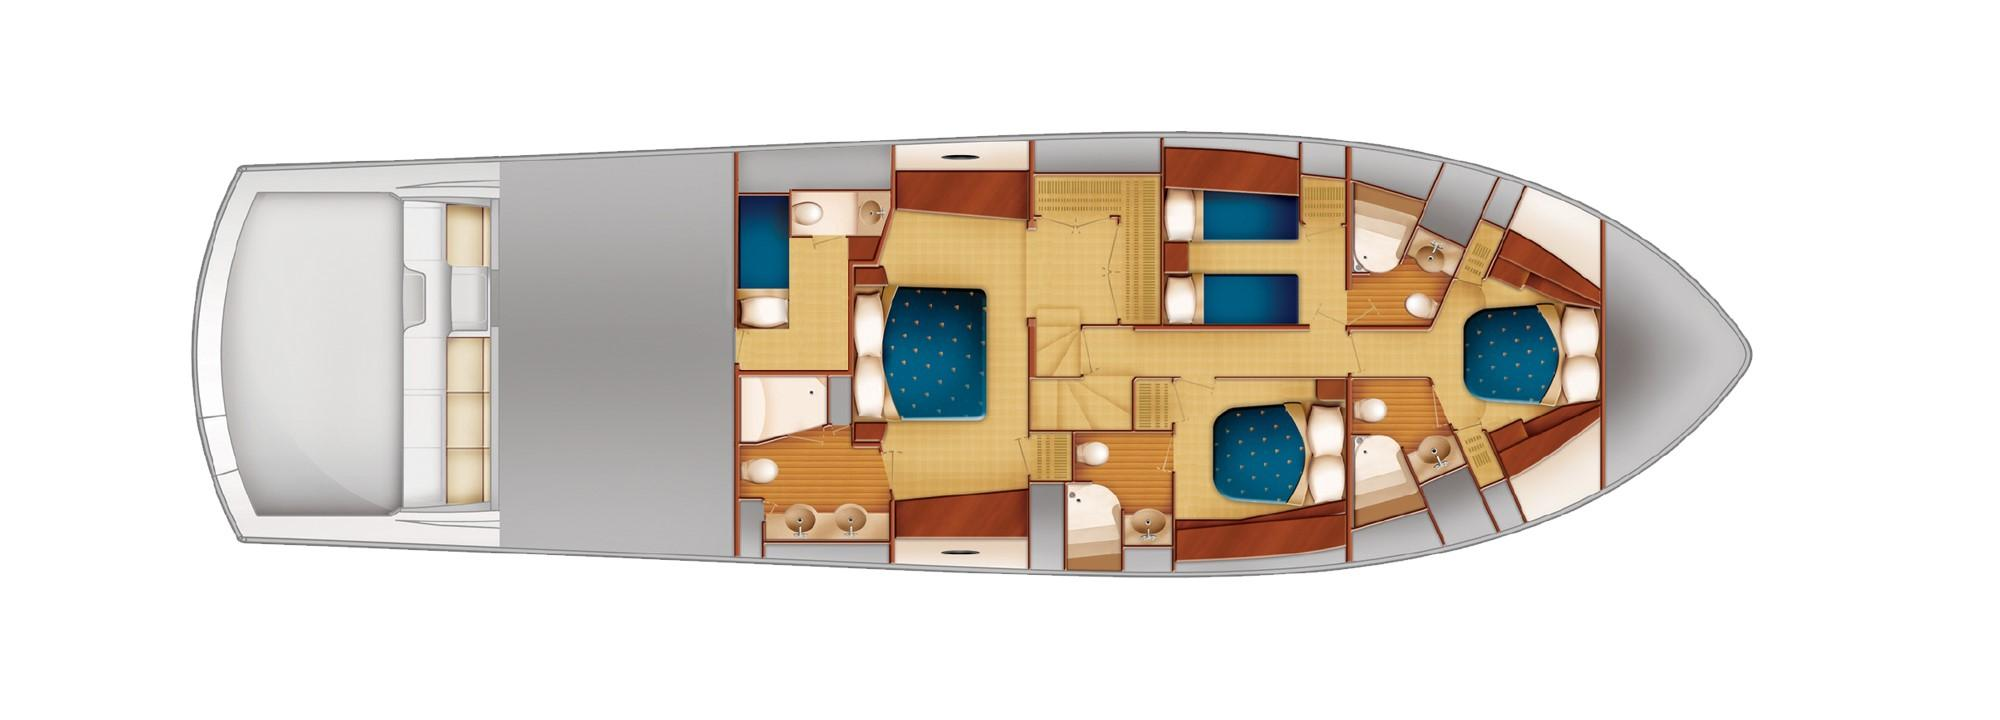 Cabin Deck layout